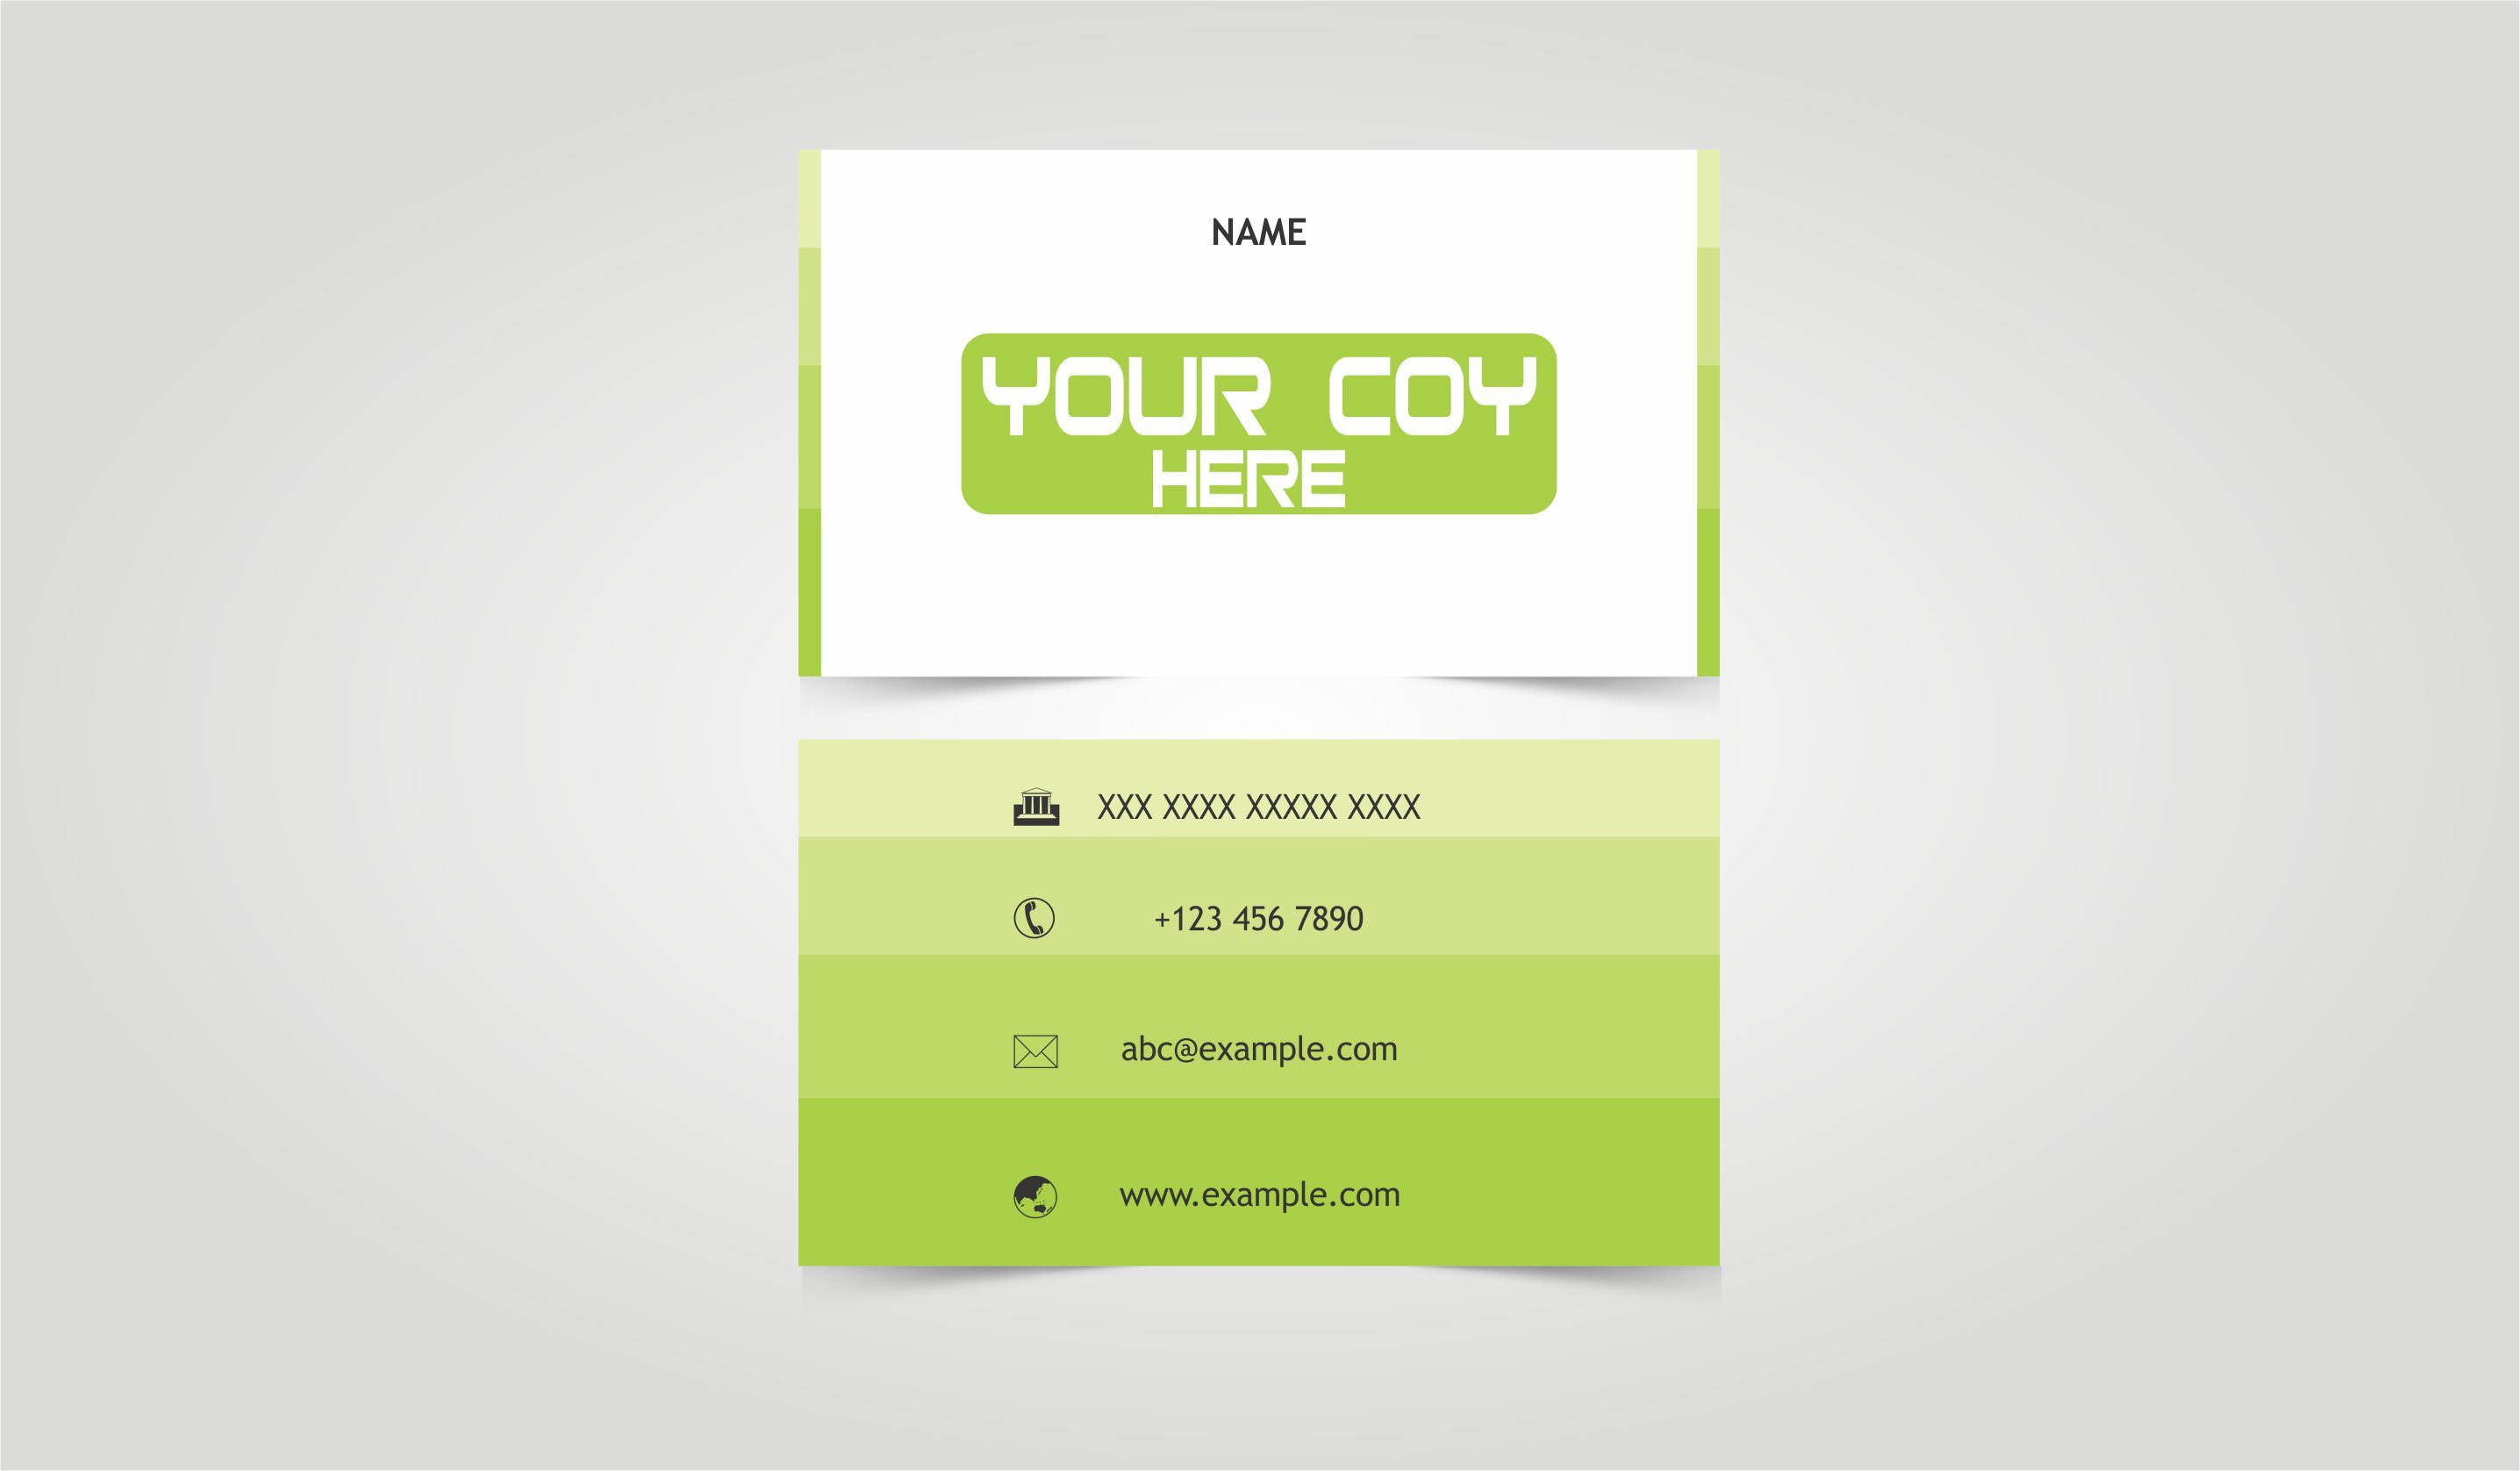 Editable Multipurpose Business Card Template Can Be Edited And Tweaked To Your Satisfaction Format Core Business Card Template Business Card Graphic Cards